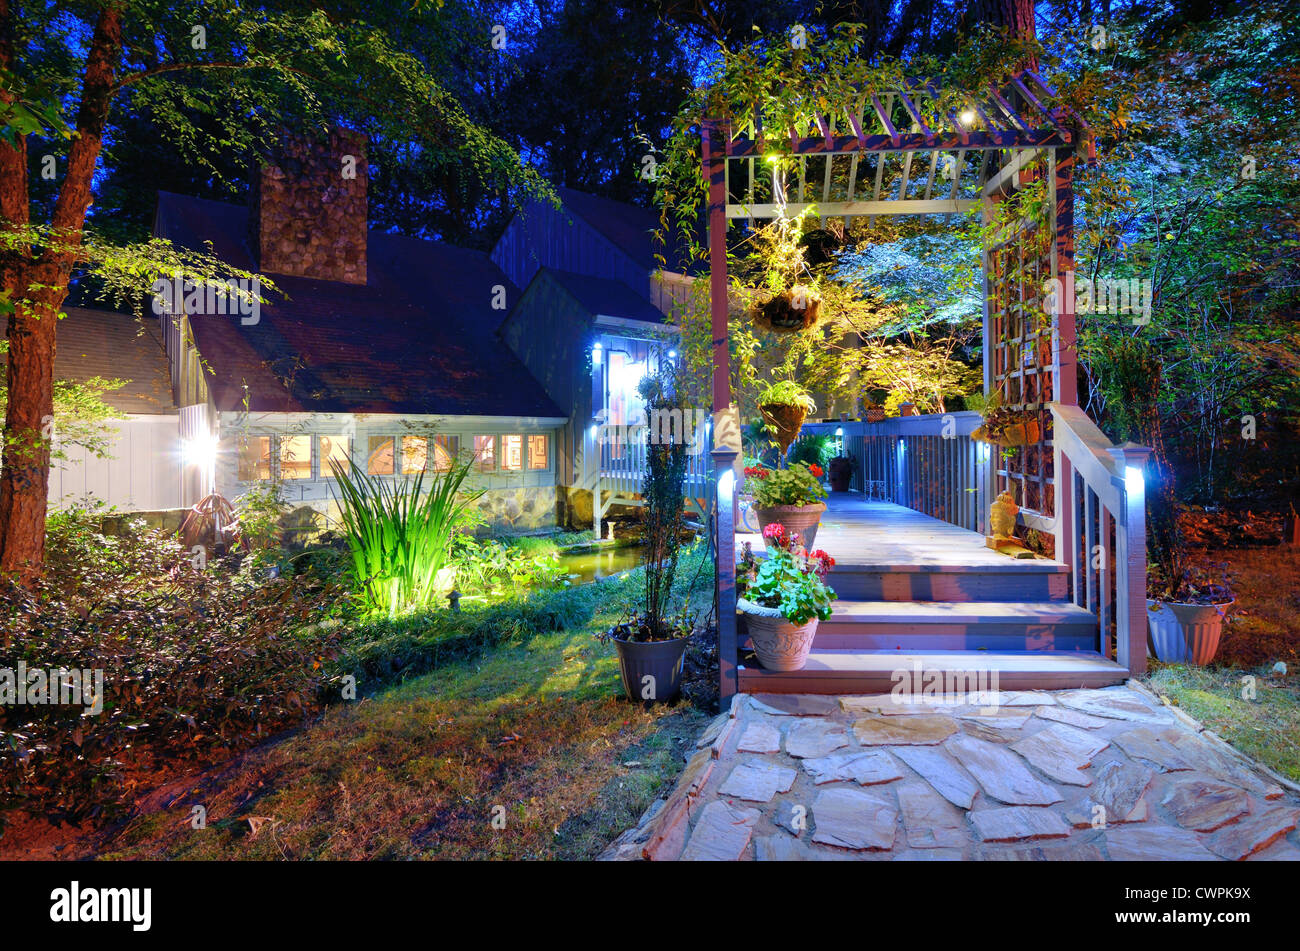 Walkway and front porch of a nice house in the woods. - Stock Image